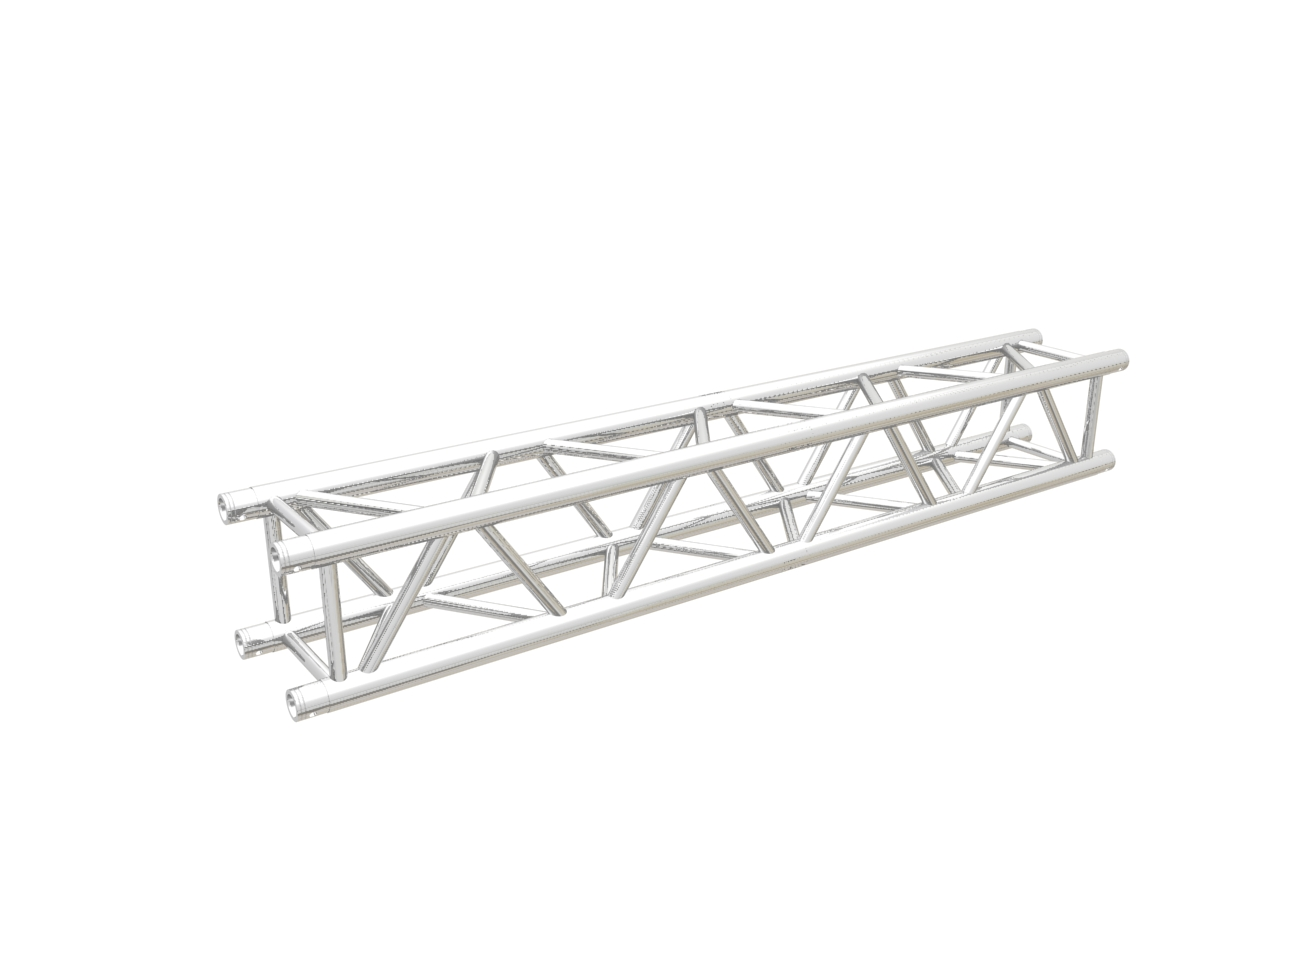 220 220mm Ladder Truss China Factory Suppliers